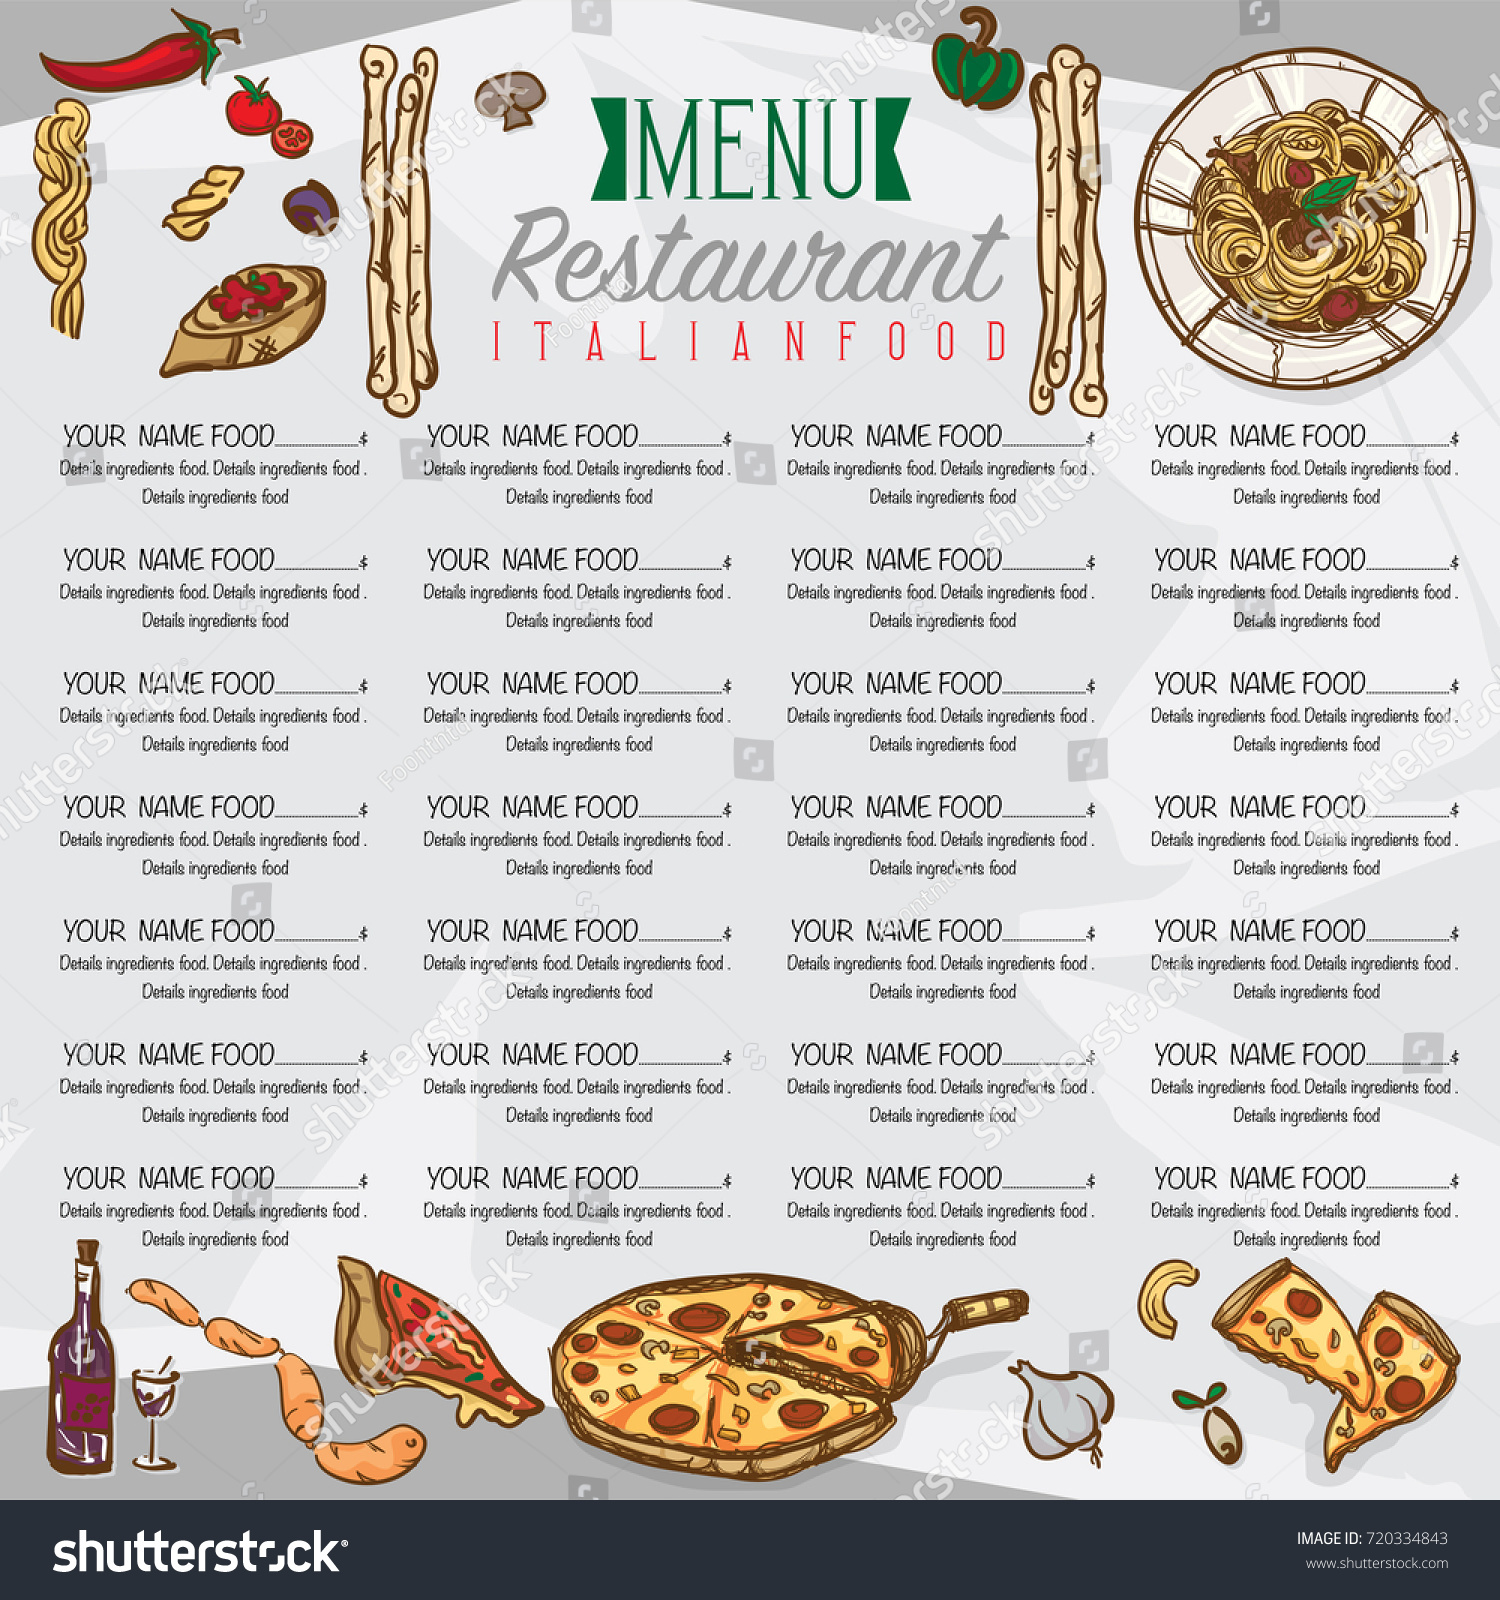 Italian Food Restaurant Names: Menu Italian Food Template Design Hand Stock Vector